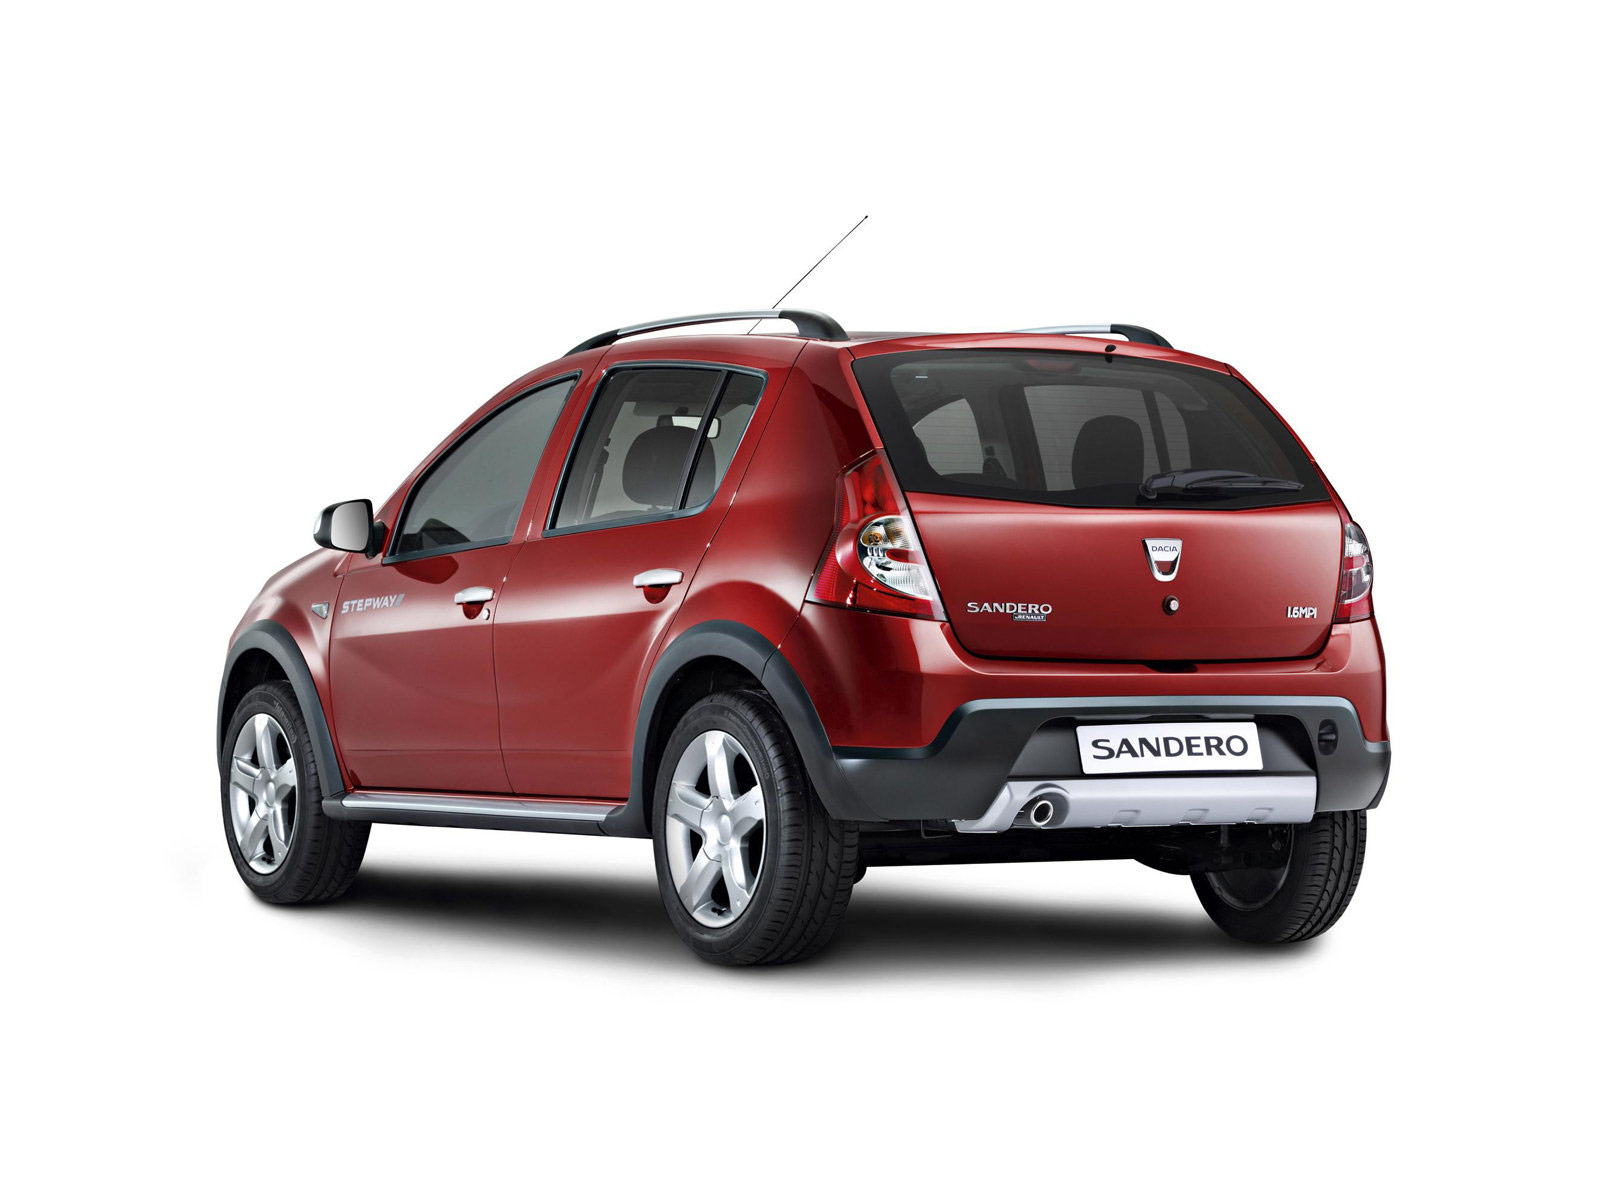 dacia sandero photos amazing cars. Black Bedroom Furniture Sets. Home Design Ideas